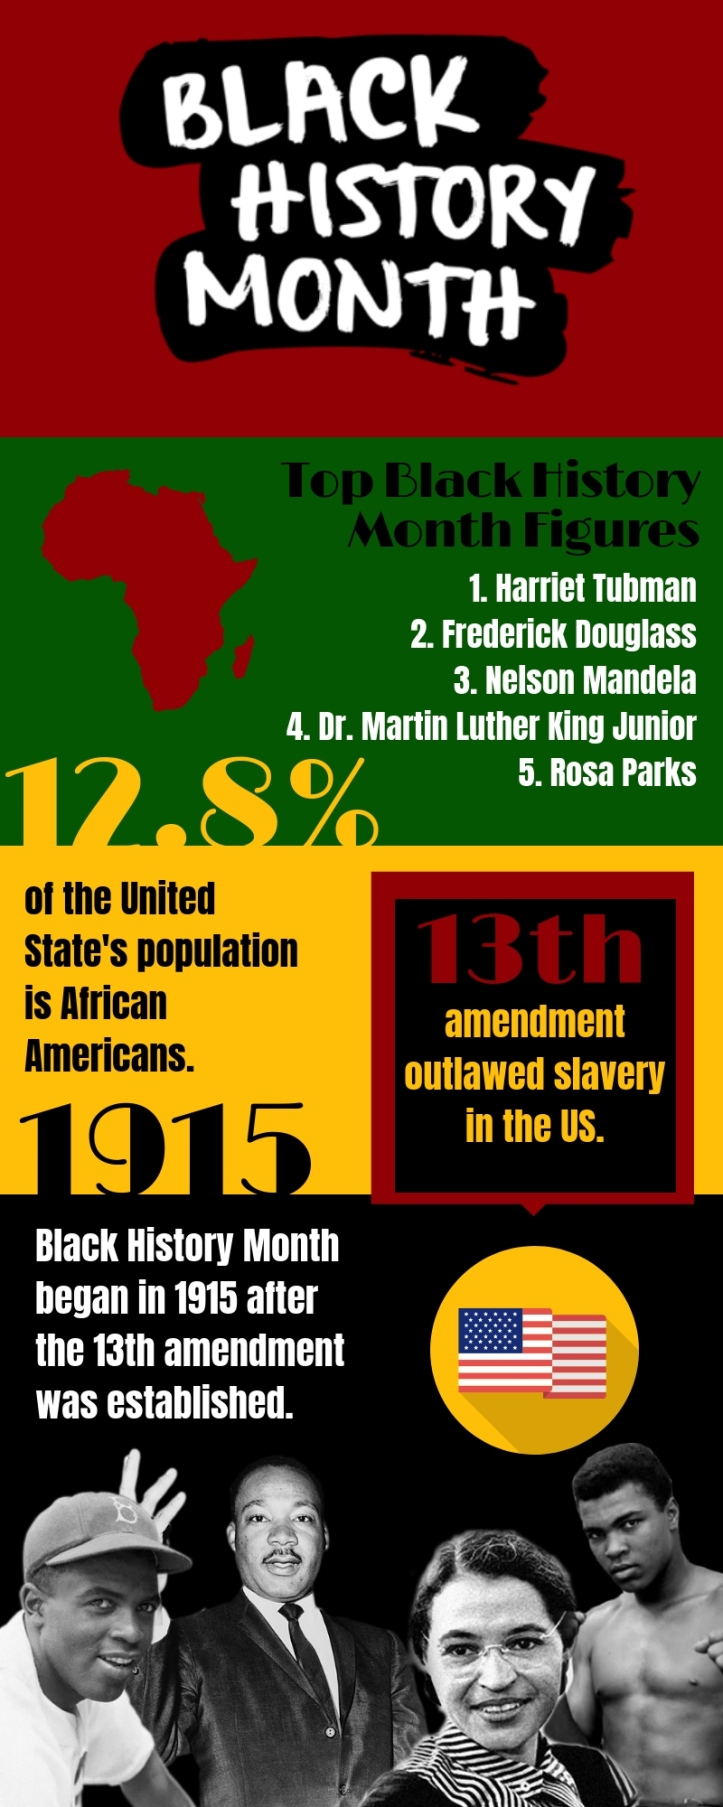 black history month infographic 2019